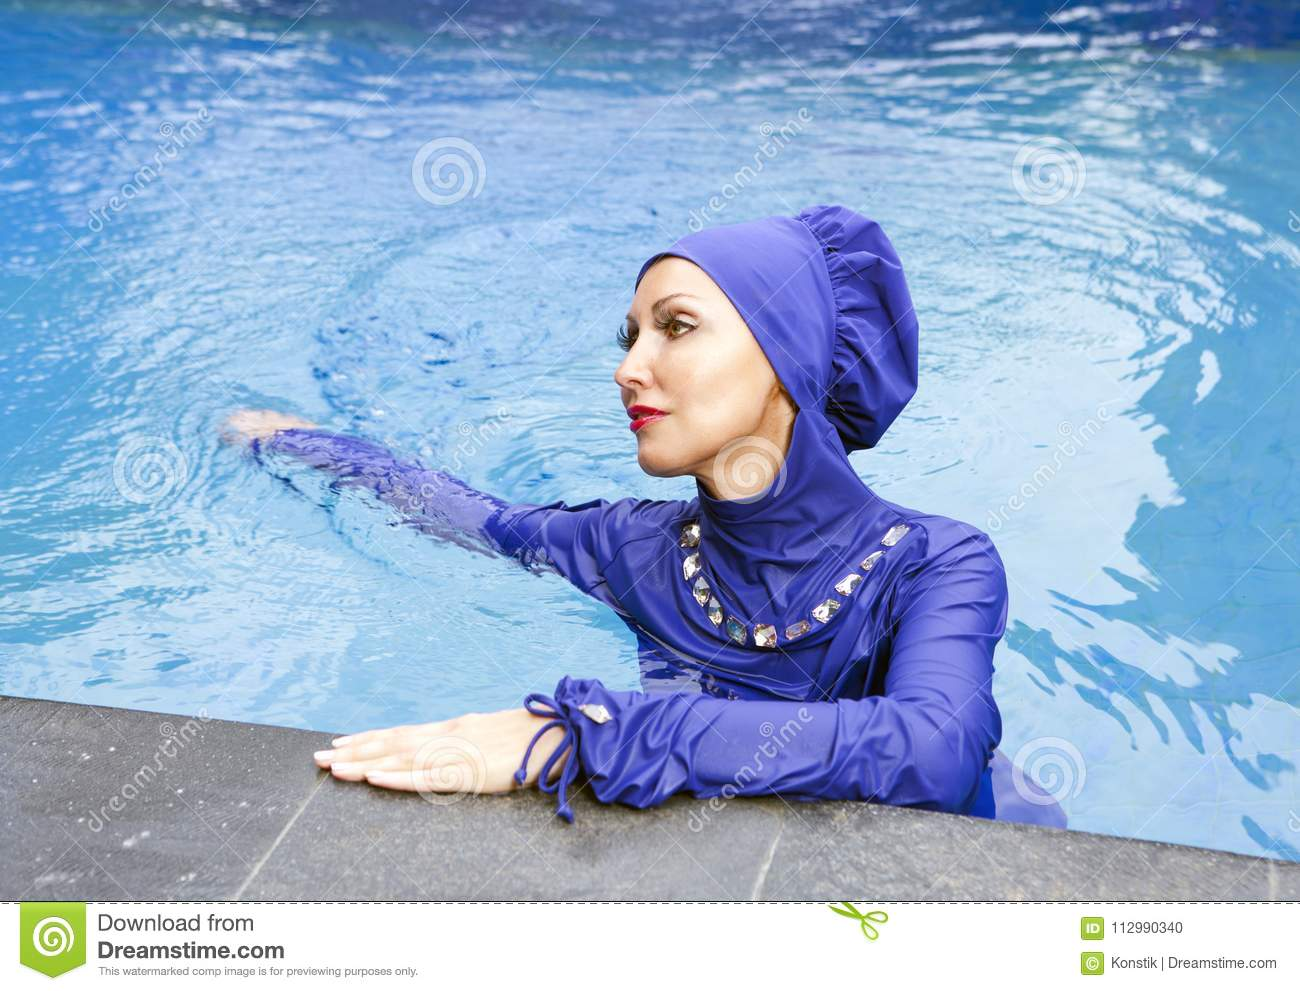 Attractive woman in a Muslim swimwear burkini swims in the pool